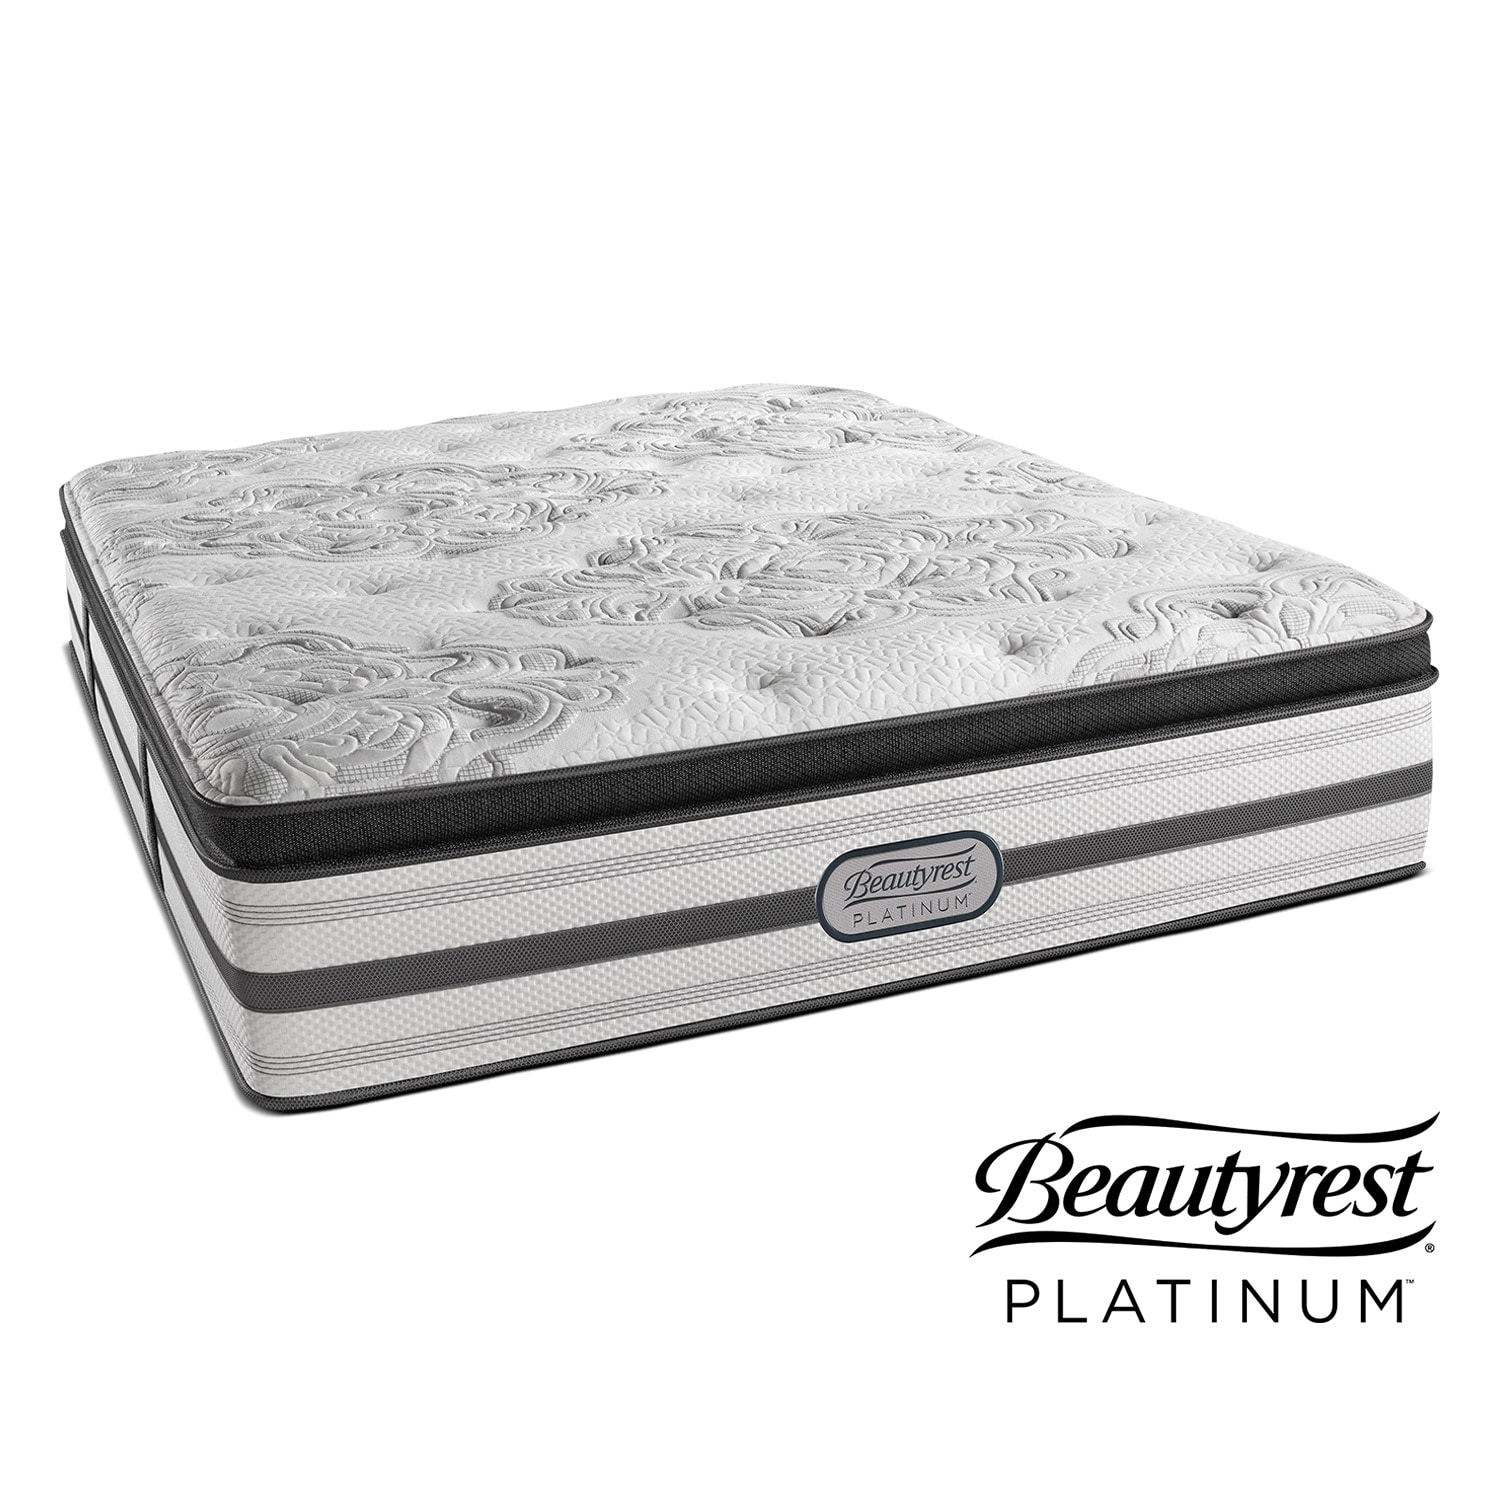 Mattresses and Bedding - Genevieve California King Mattress